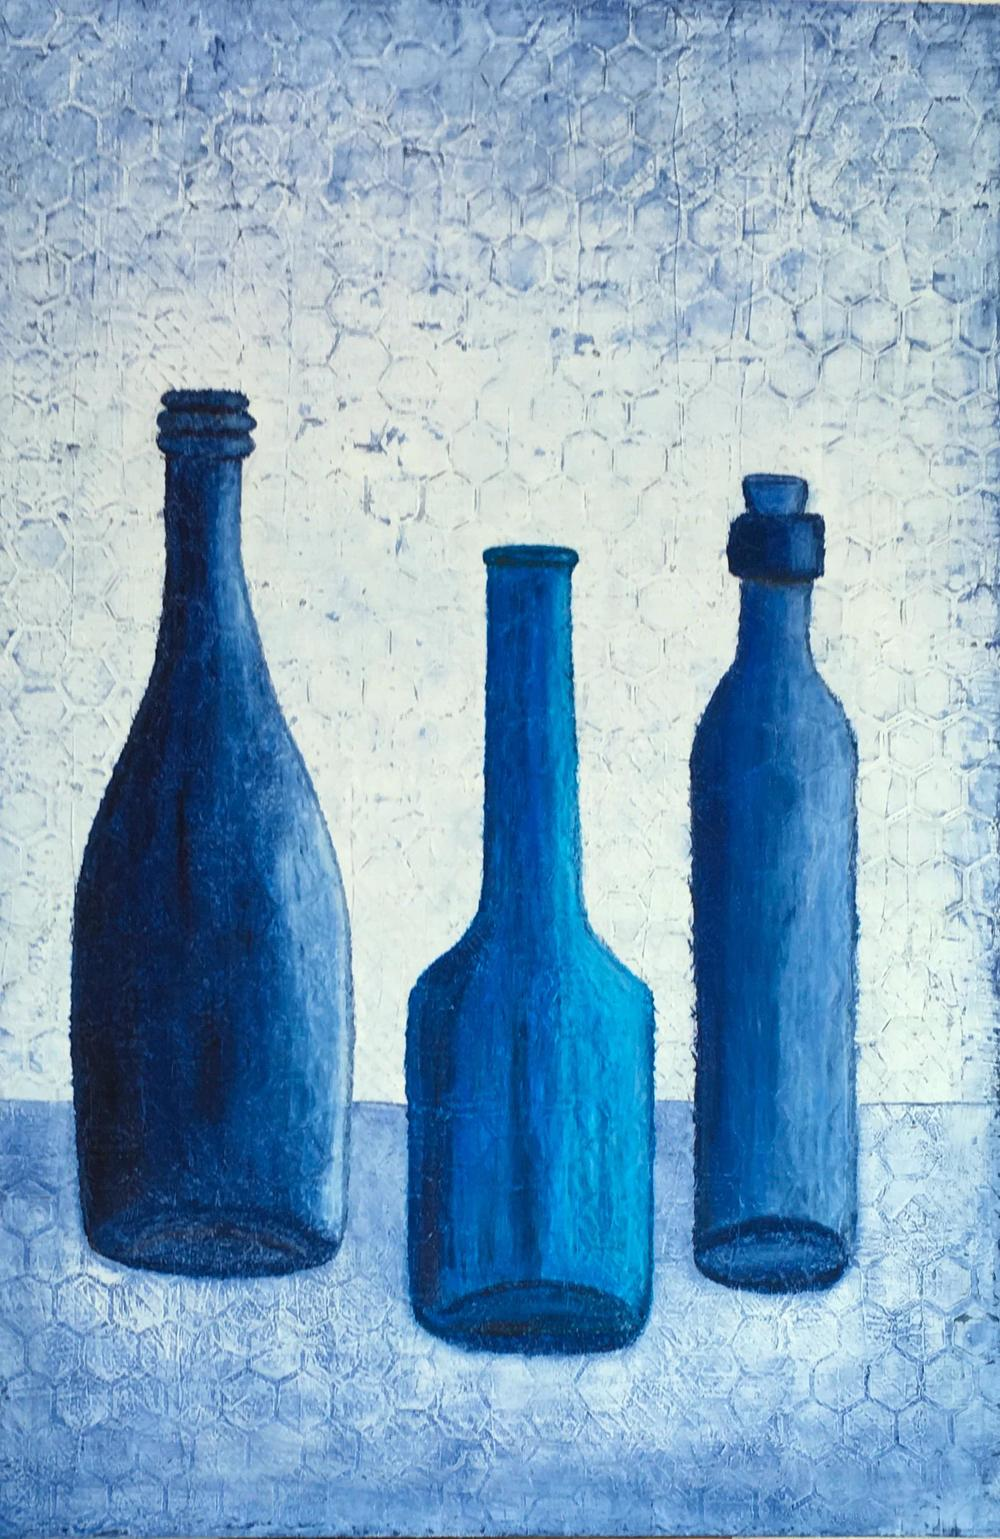 Bottle Blues original still life painting on canvas by Terri Deskins